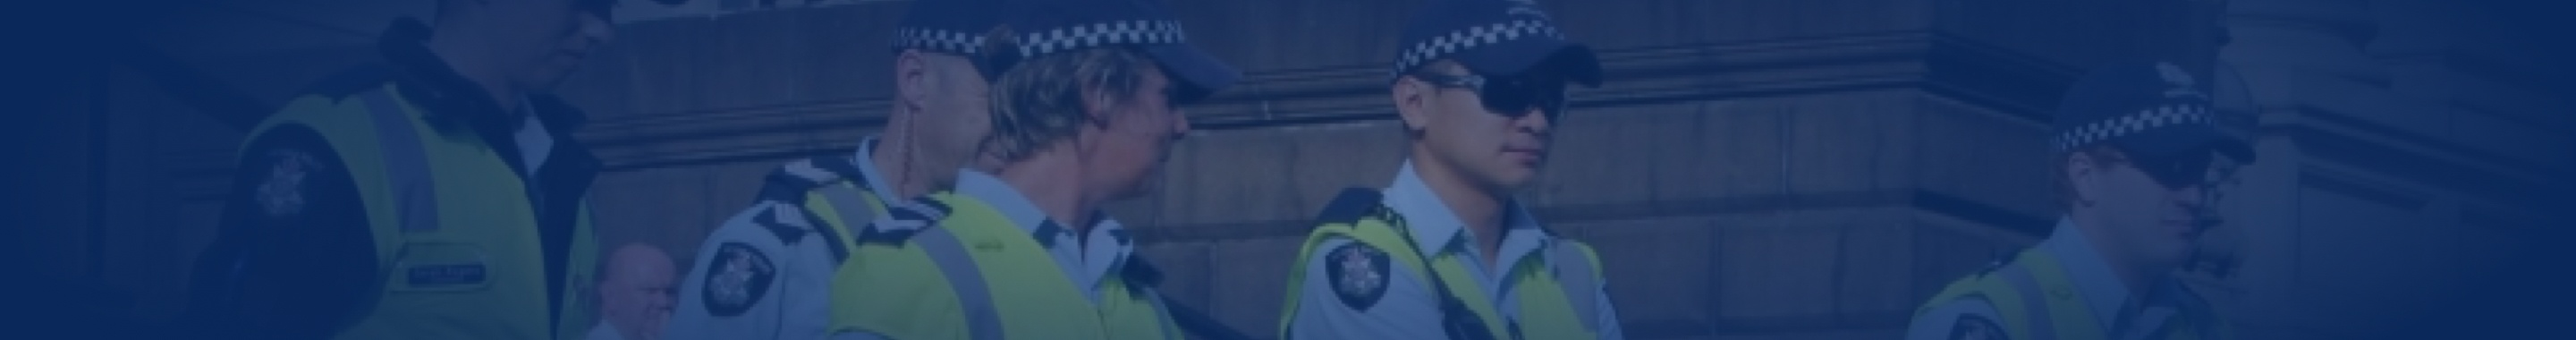 How to become a Police Officer - Salary, Qualifications